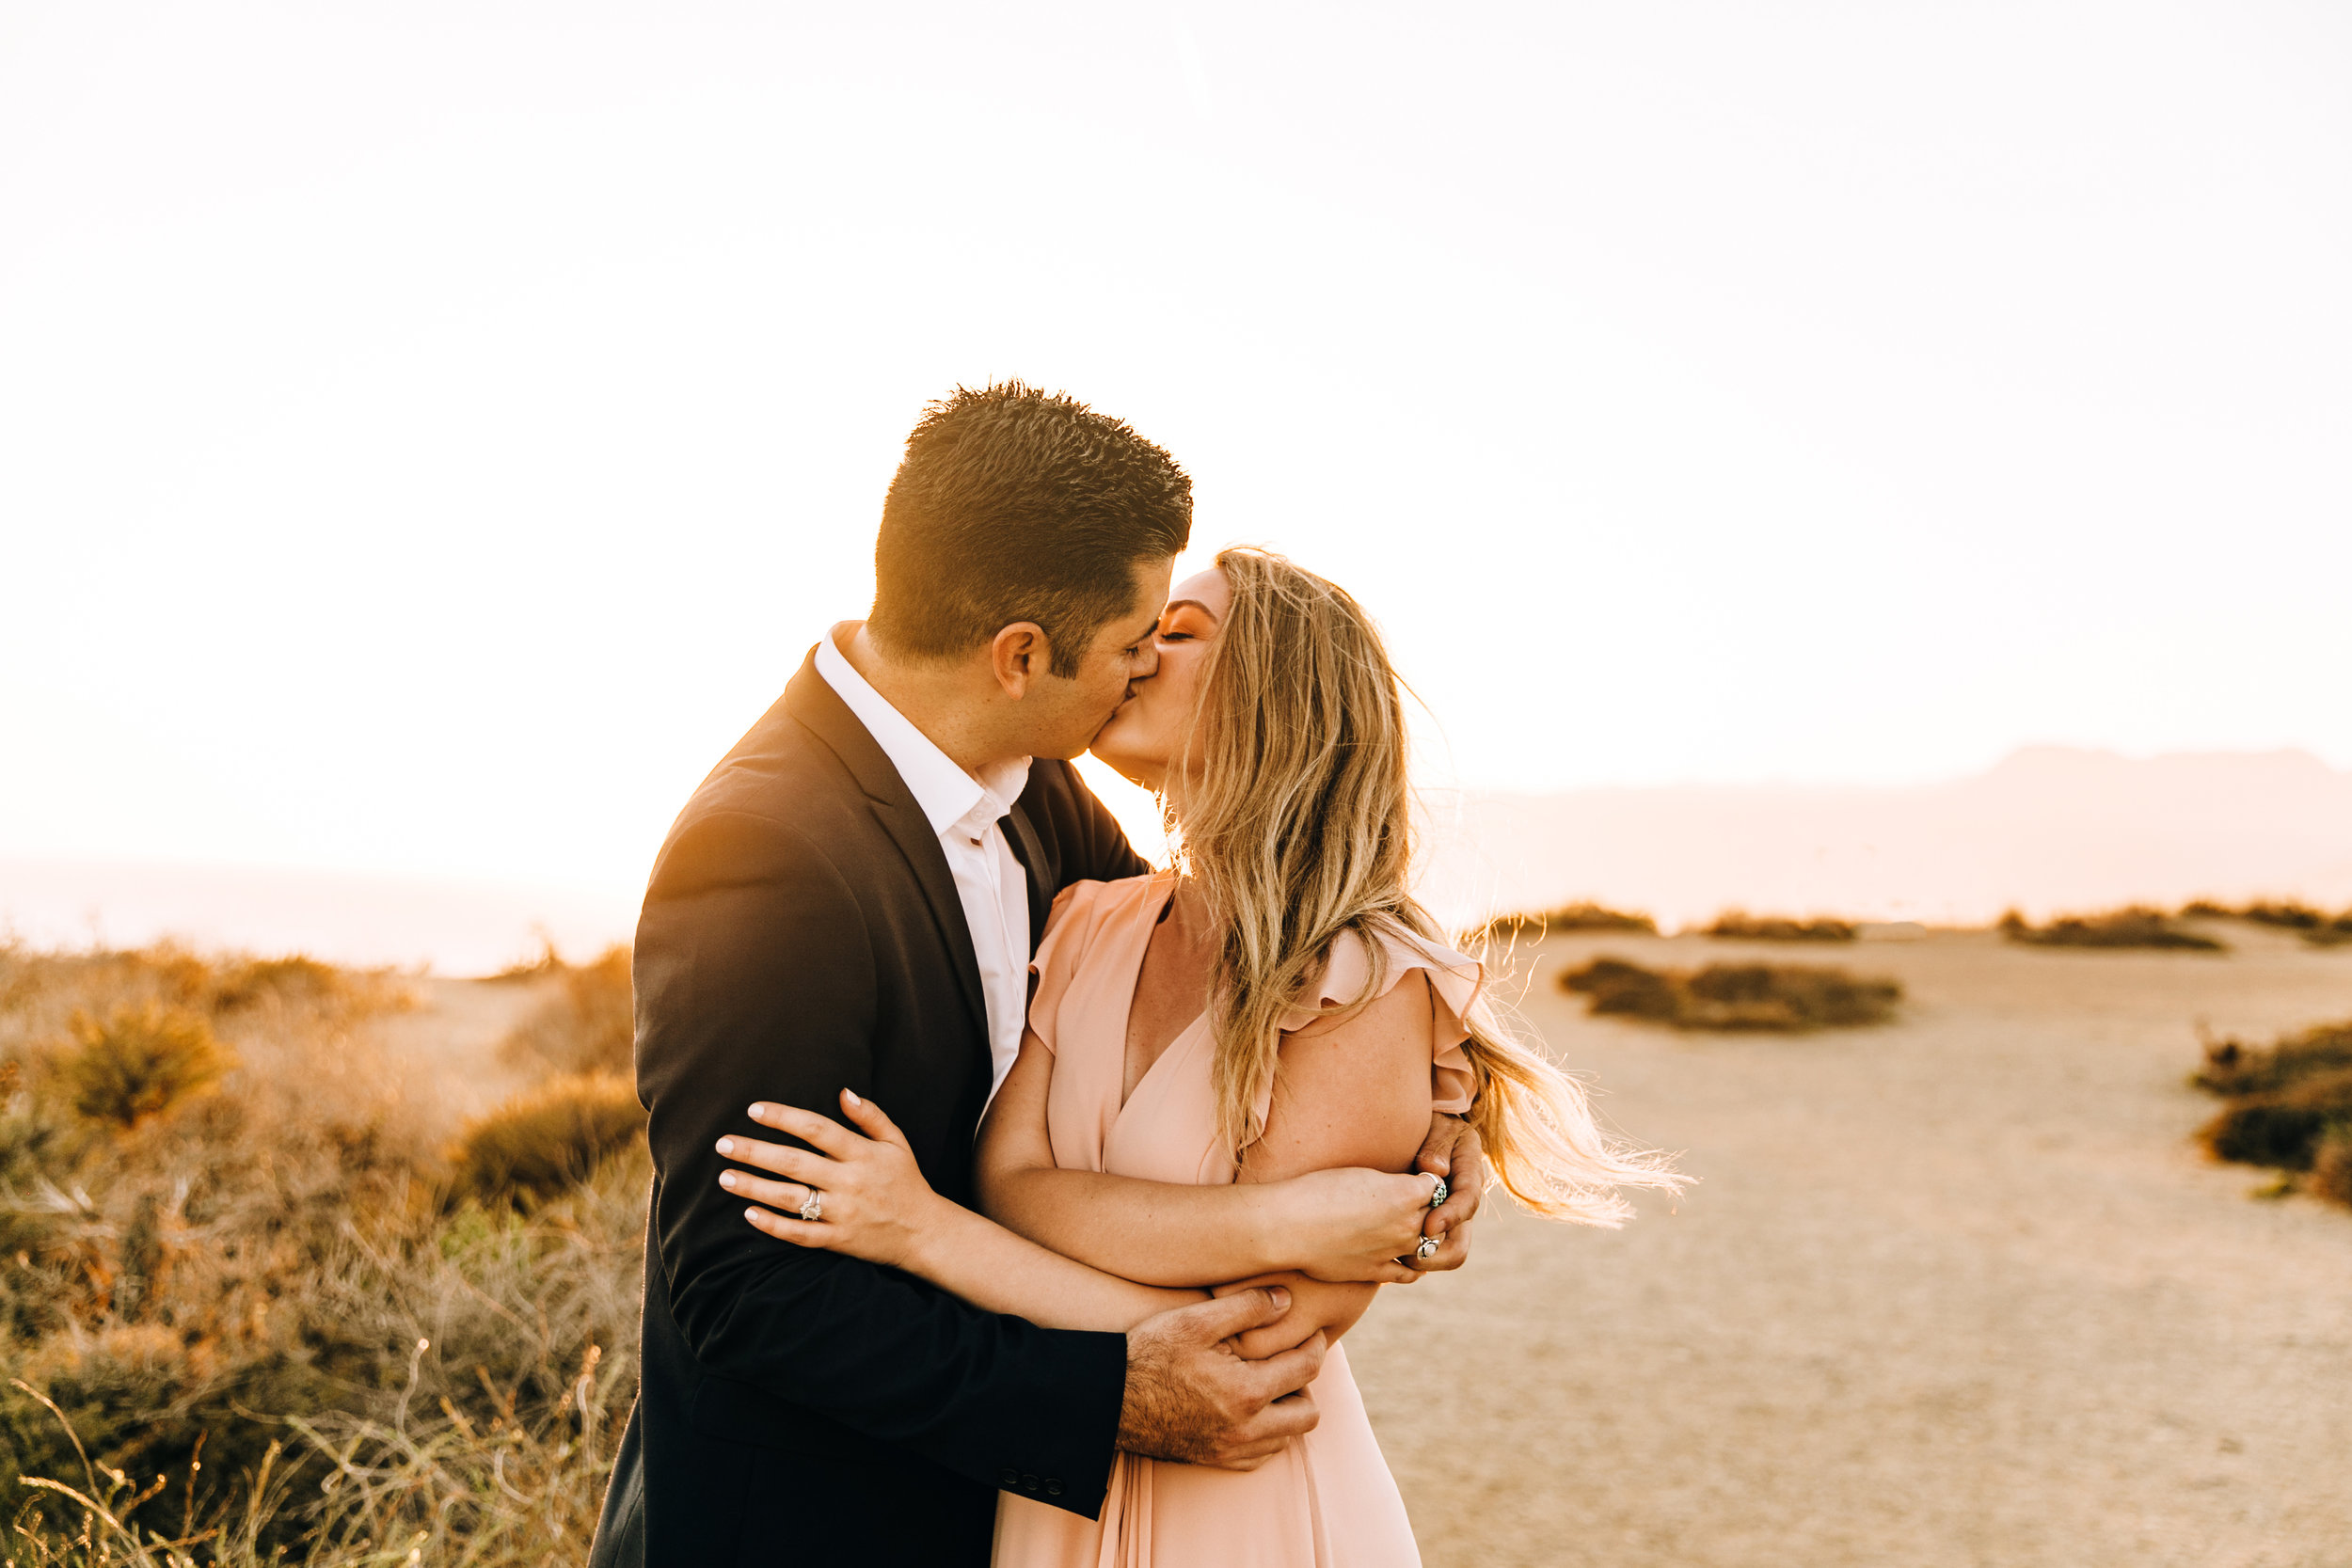 Malibu engagement photographer, Southern California engagement photographer, Los Angeles engagement photographer, SoCal engagement photographer, engagement session at the beach, LA engagement session